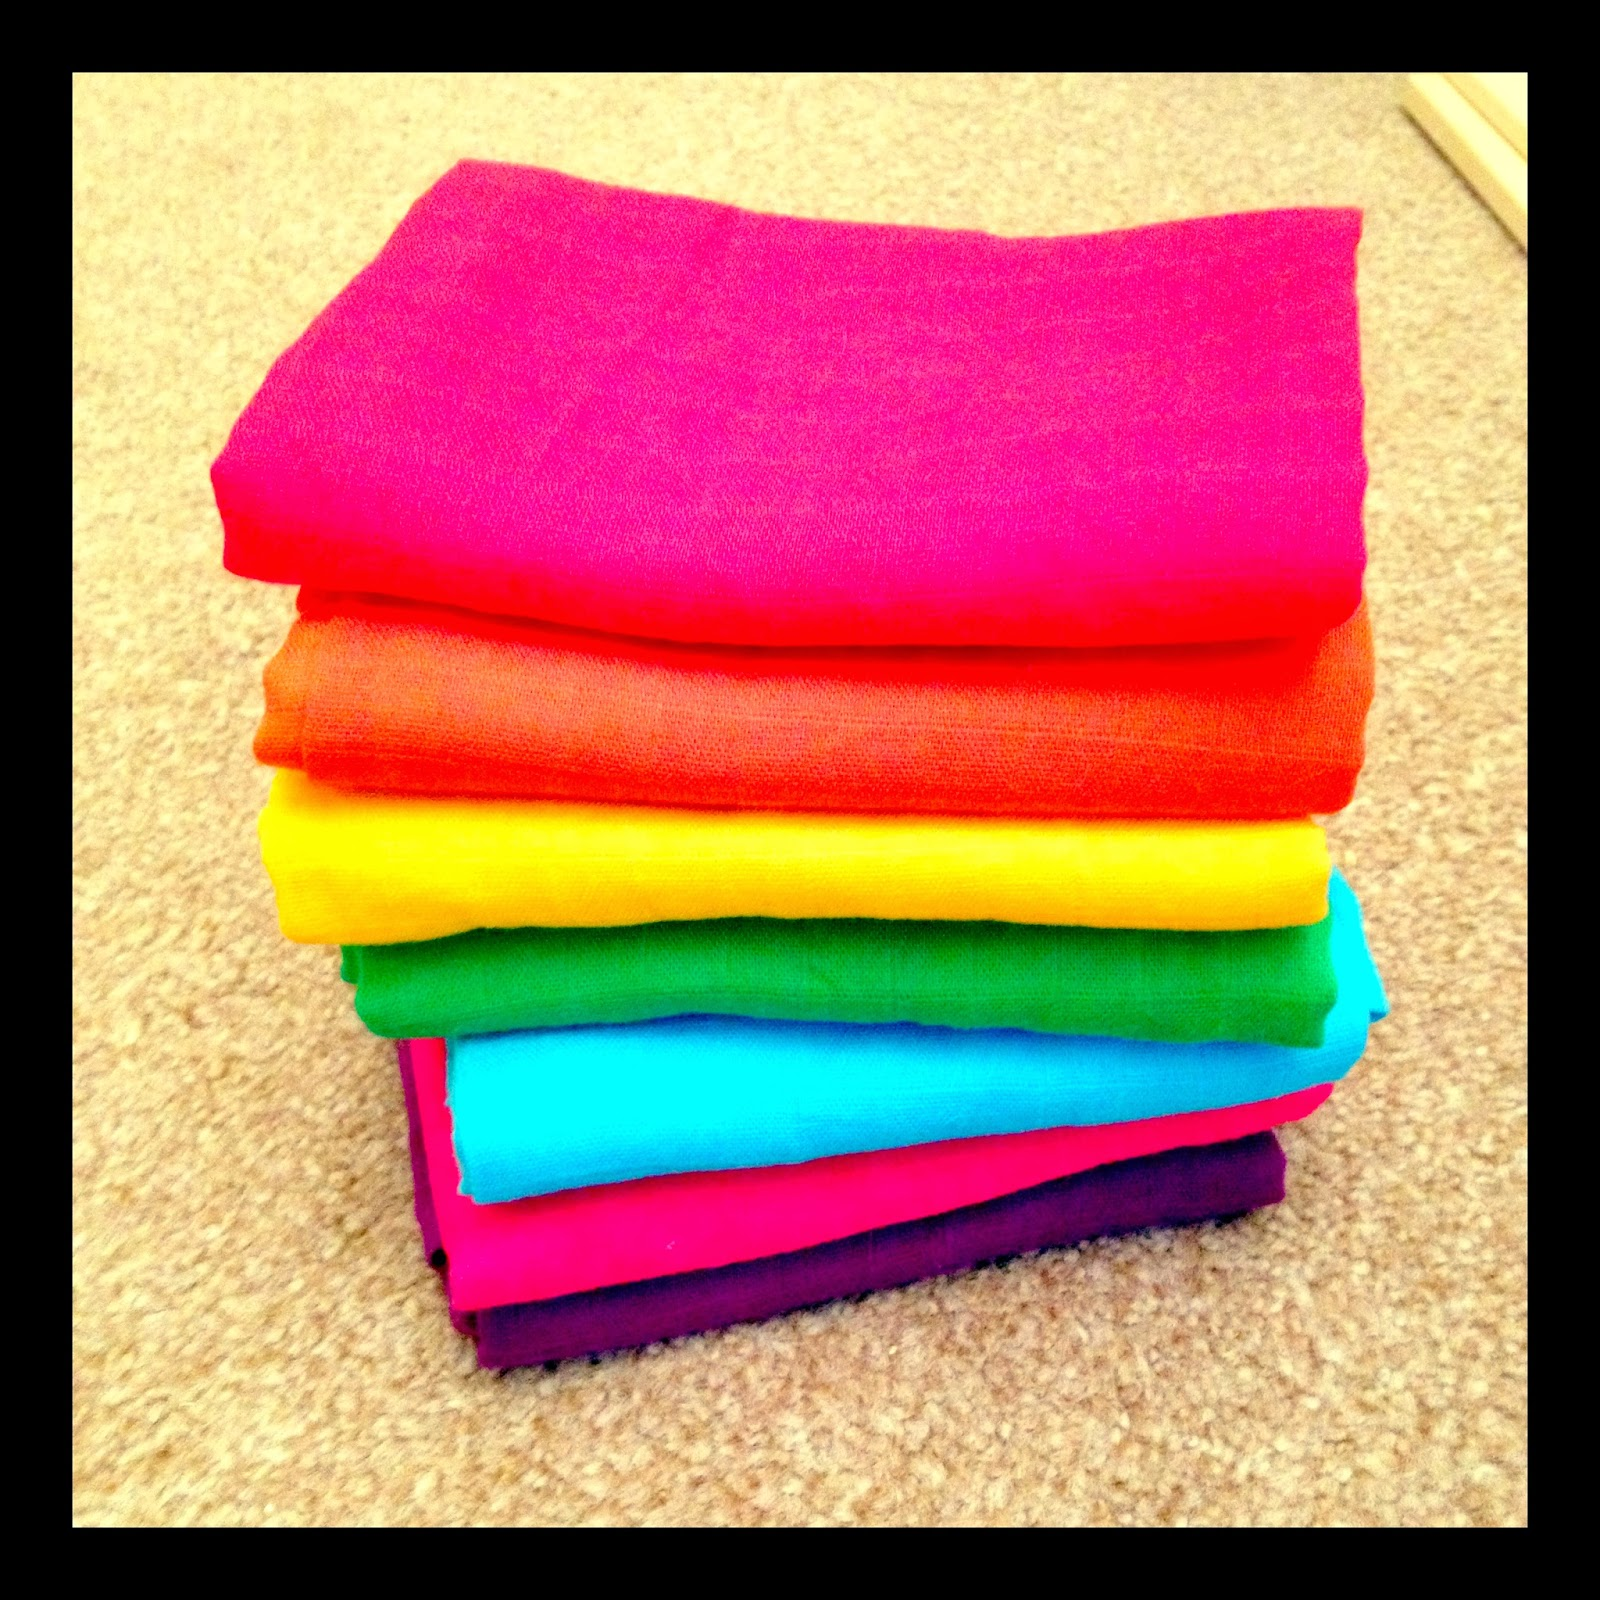 Rainbow muslins from Faye & Lou